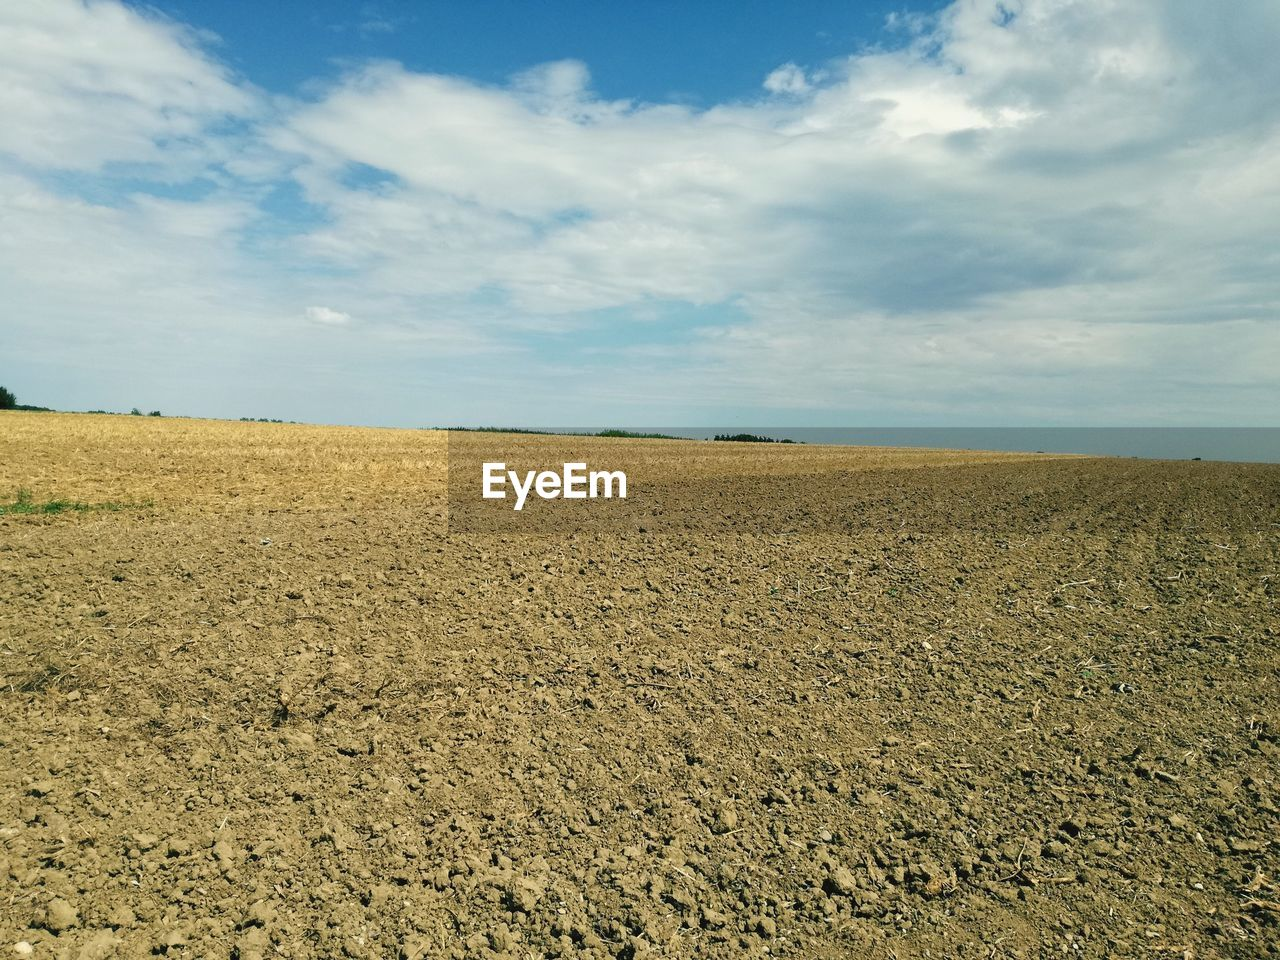 sky, environment, cloud - sky, land, landscape, tranquil scene, field, tranquility, scenics - nature, beauty in nature, nature, no people, rural scene, agriculture, day, horizon over land, horizon, idyllic, non-urban scene, outdoors, arid climate